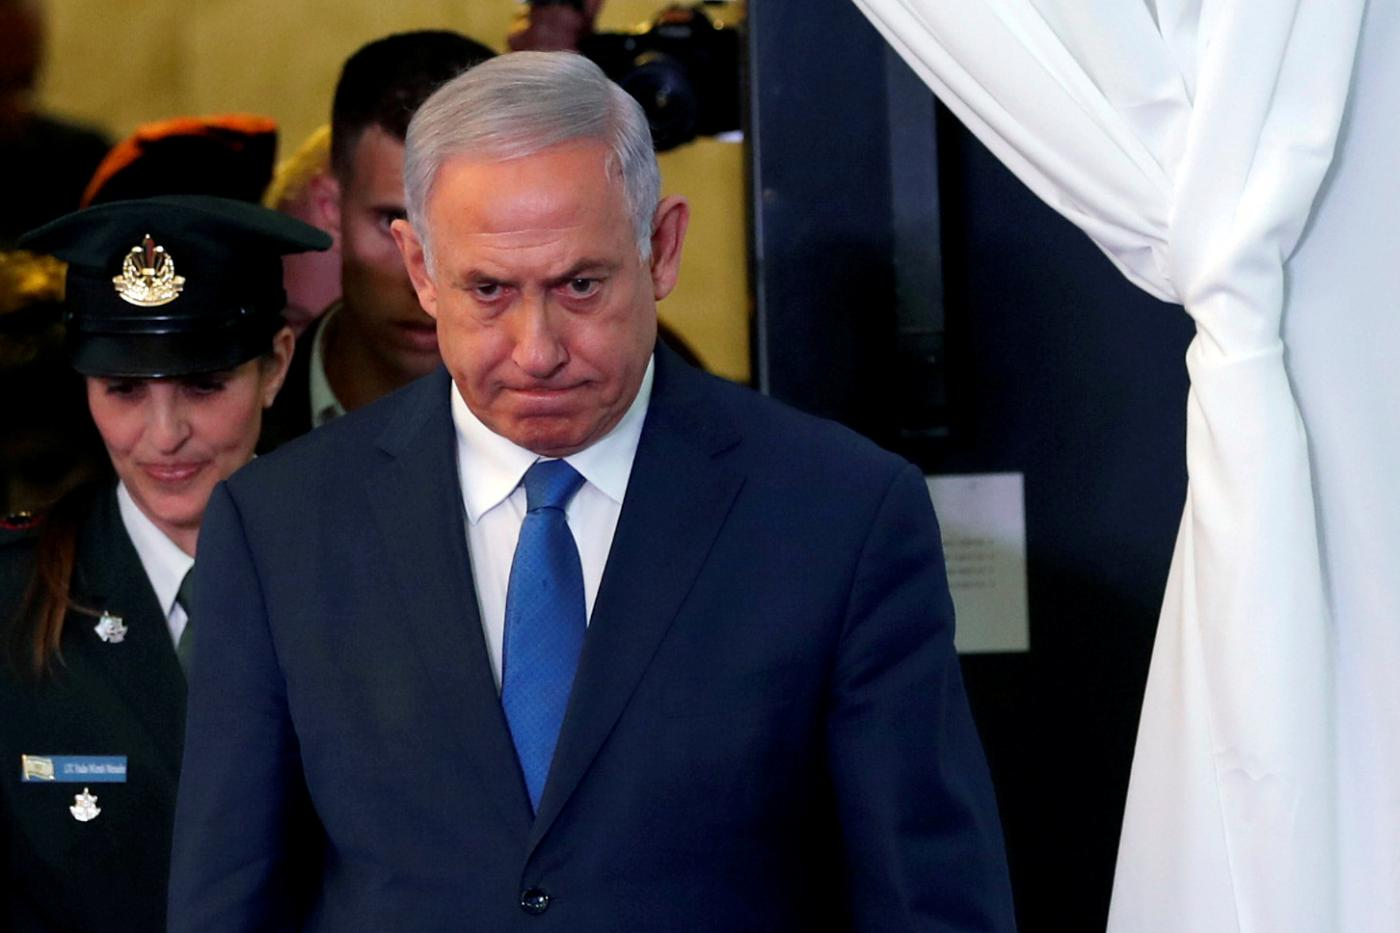 Israel's Netanyahu charged with corruption, says he won't resign